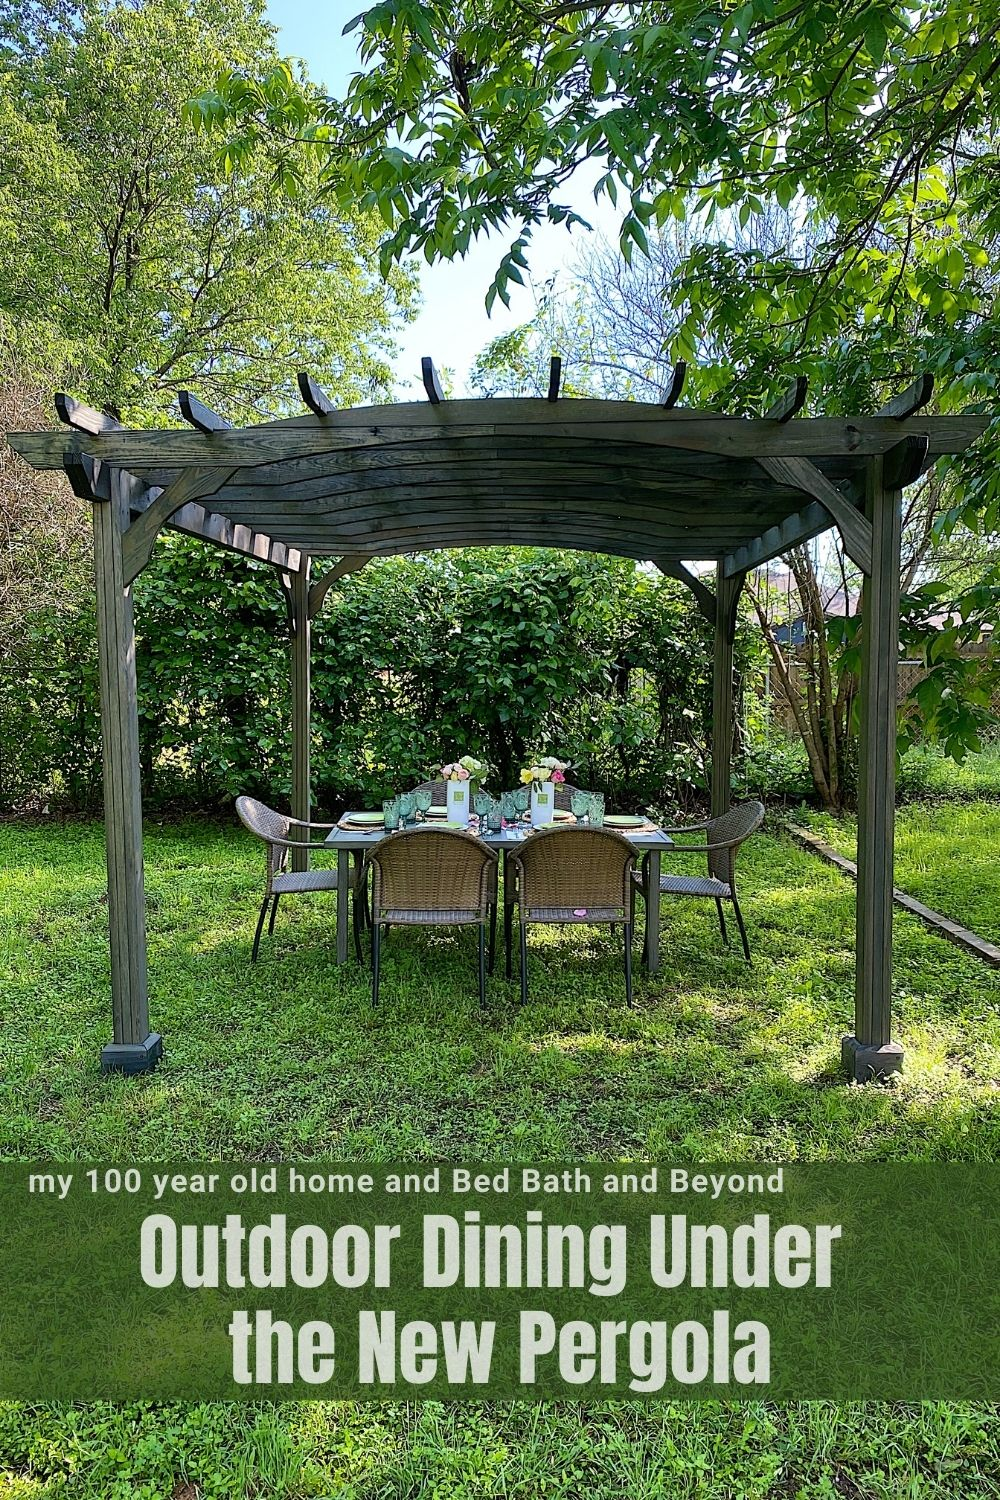 I am so happy to share our new Outdoor Dining area at our Waco Airbnb. I wanted to create an additional outdoor dining area and thanks to Bed Bath and Beyond, this area under the pergola is just incredible.